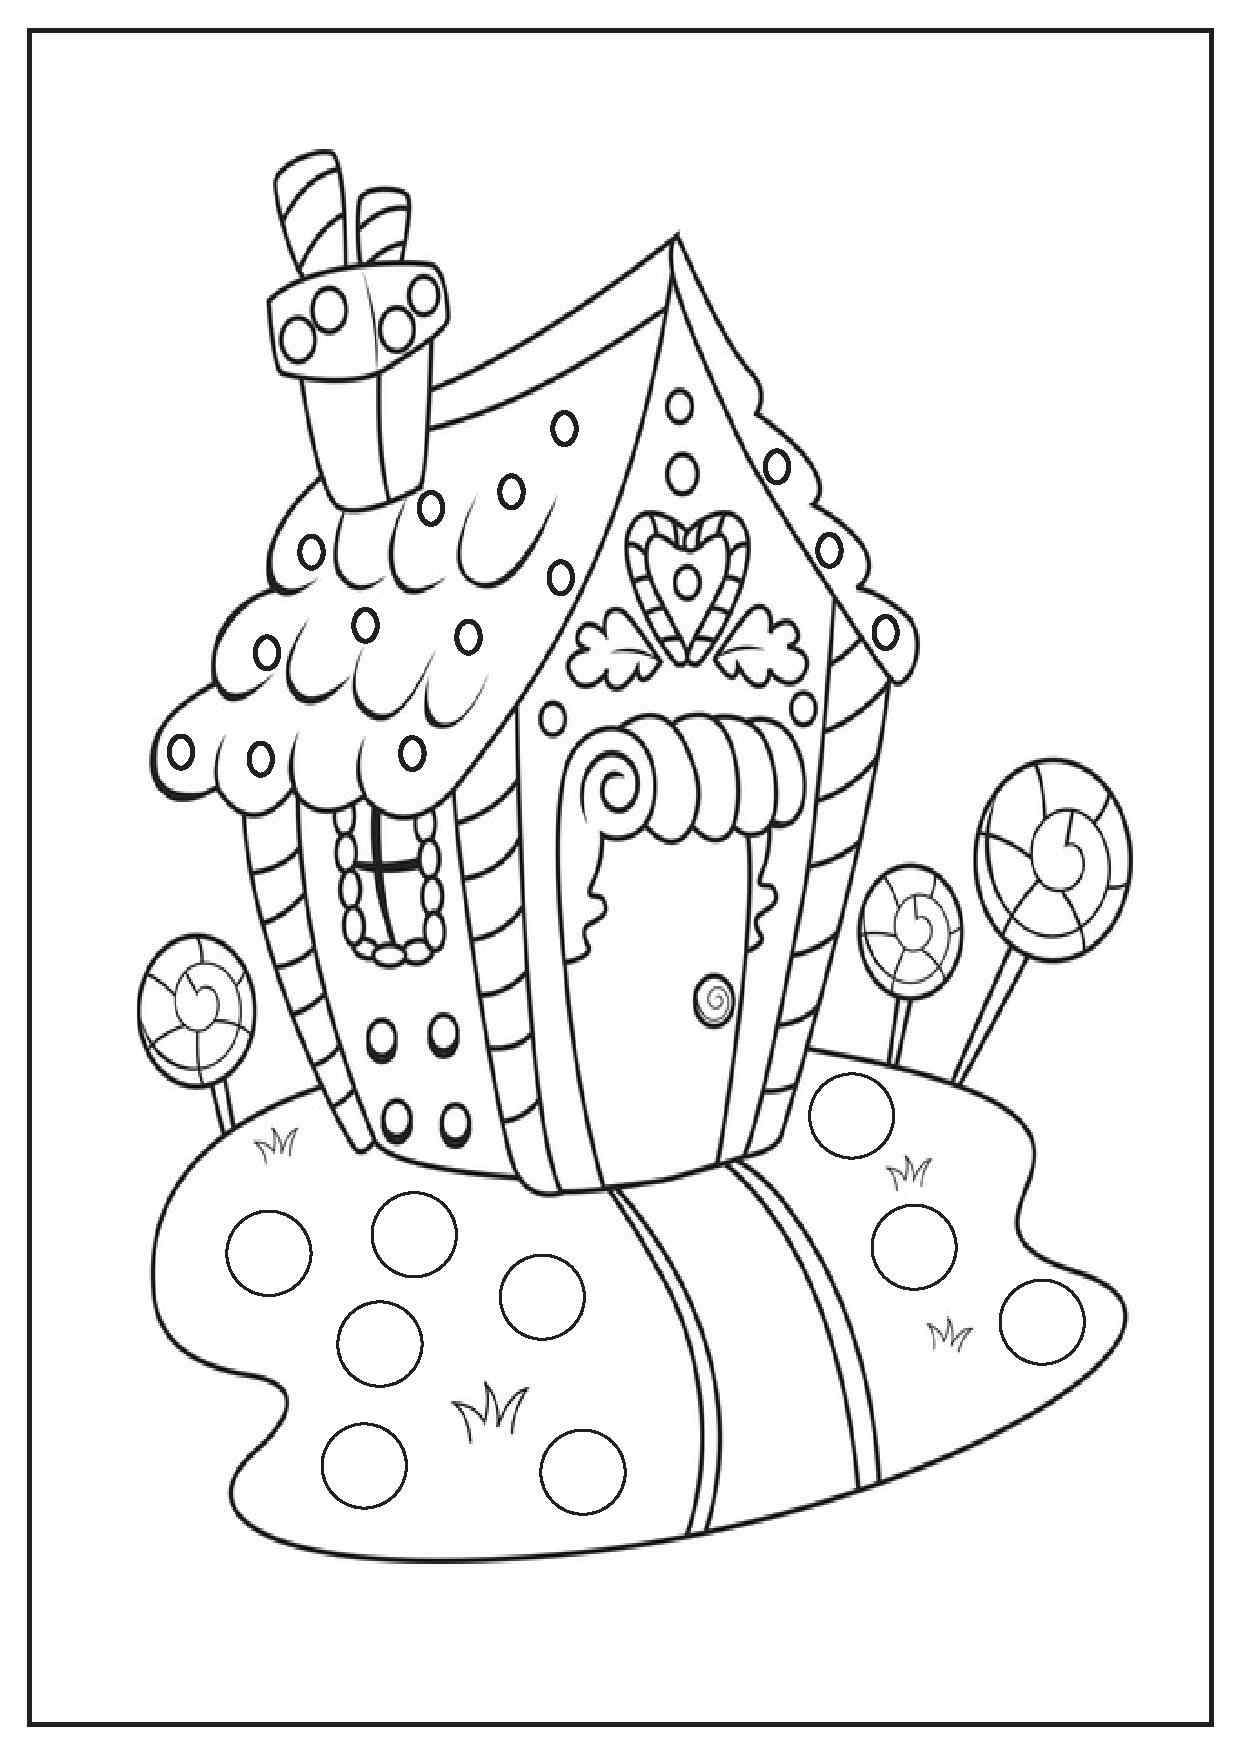 Santa List Coloring Sheet With Christmas Pages Printable